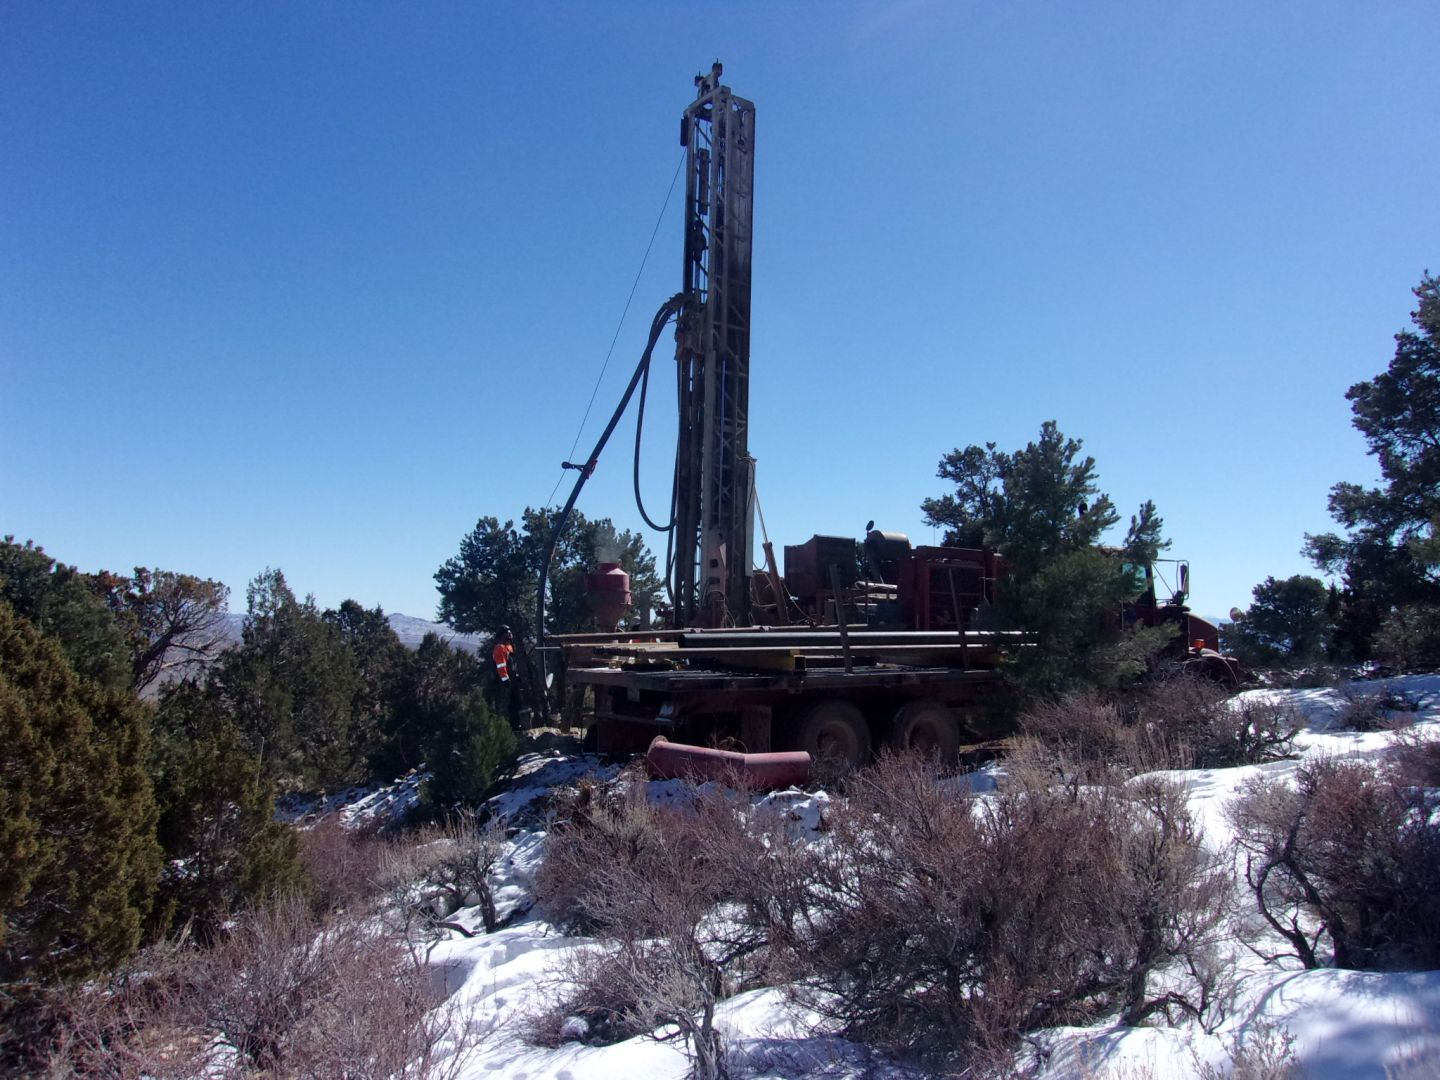 Drilling on the Lucky Project